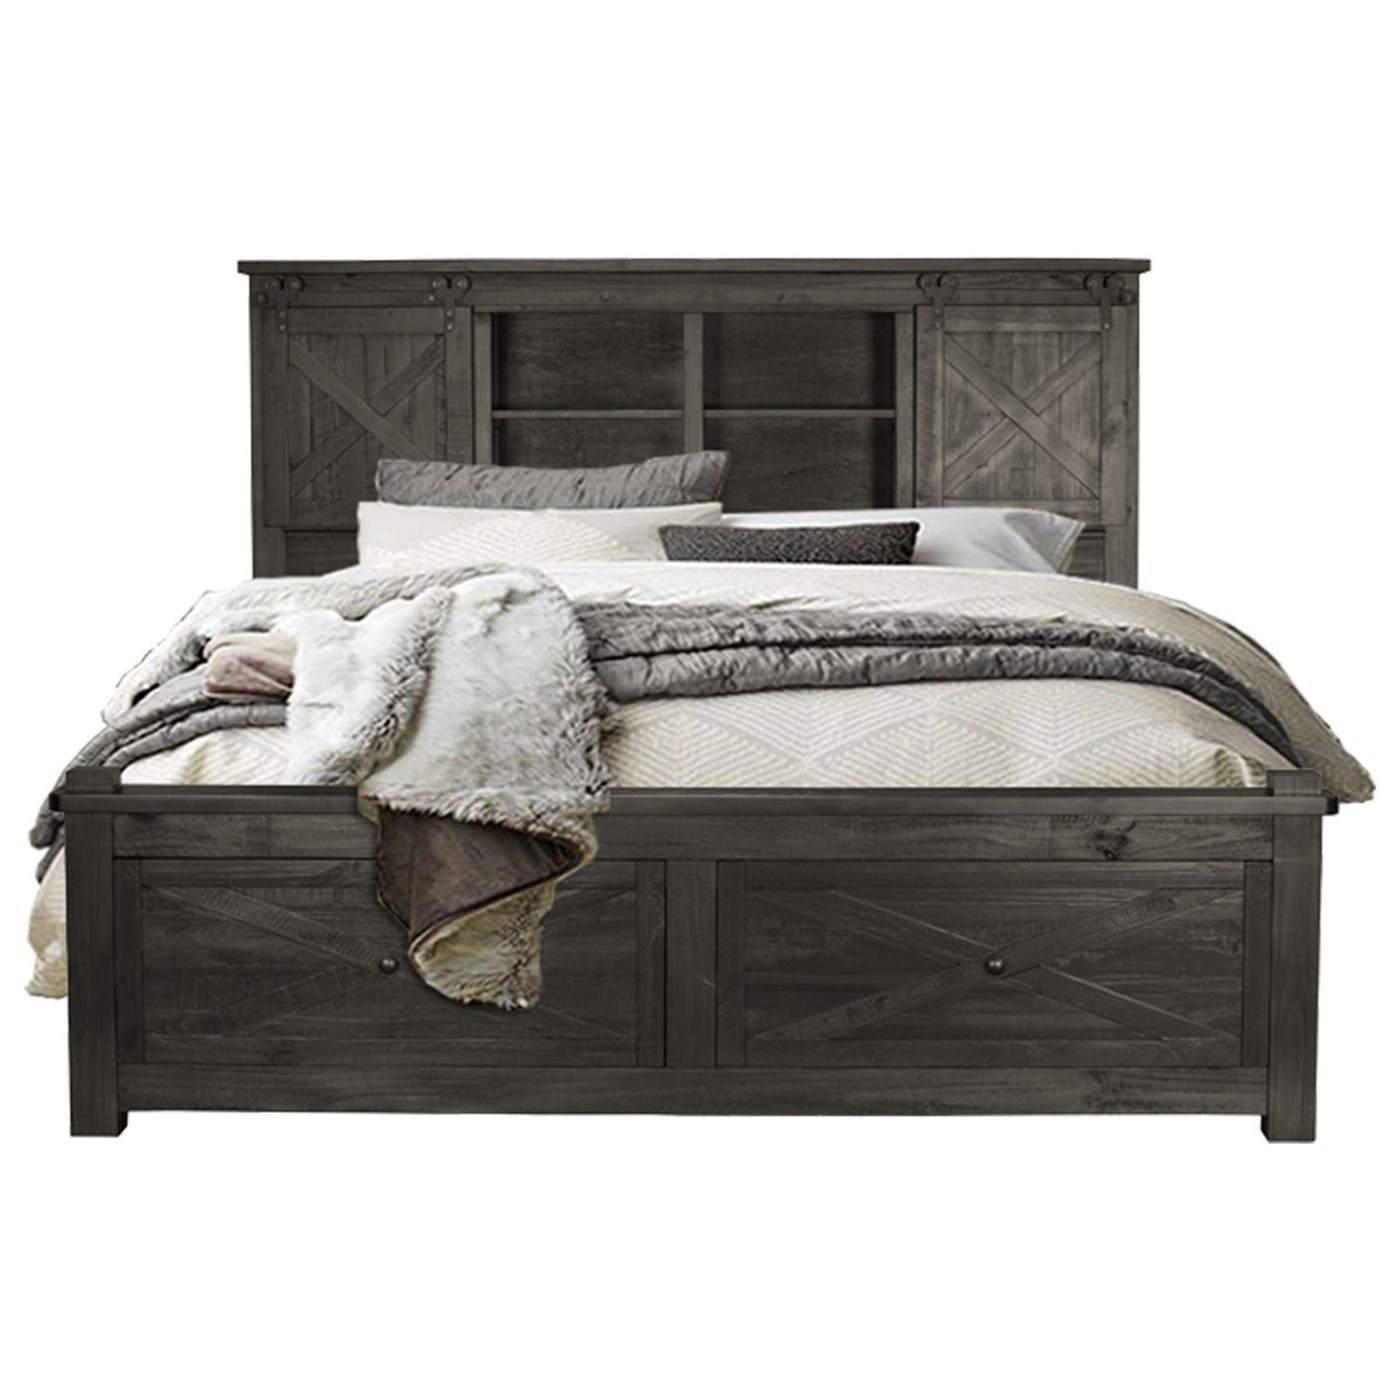 Aamerica Sun Valley King Storage Bed With Footboard Bench